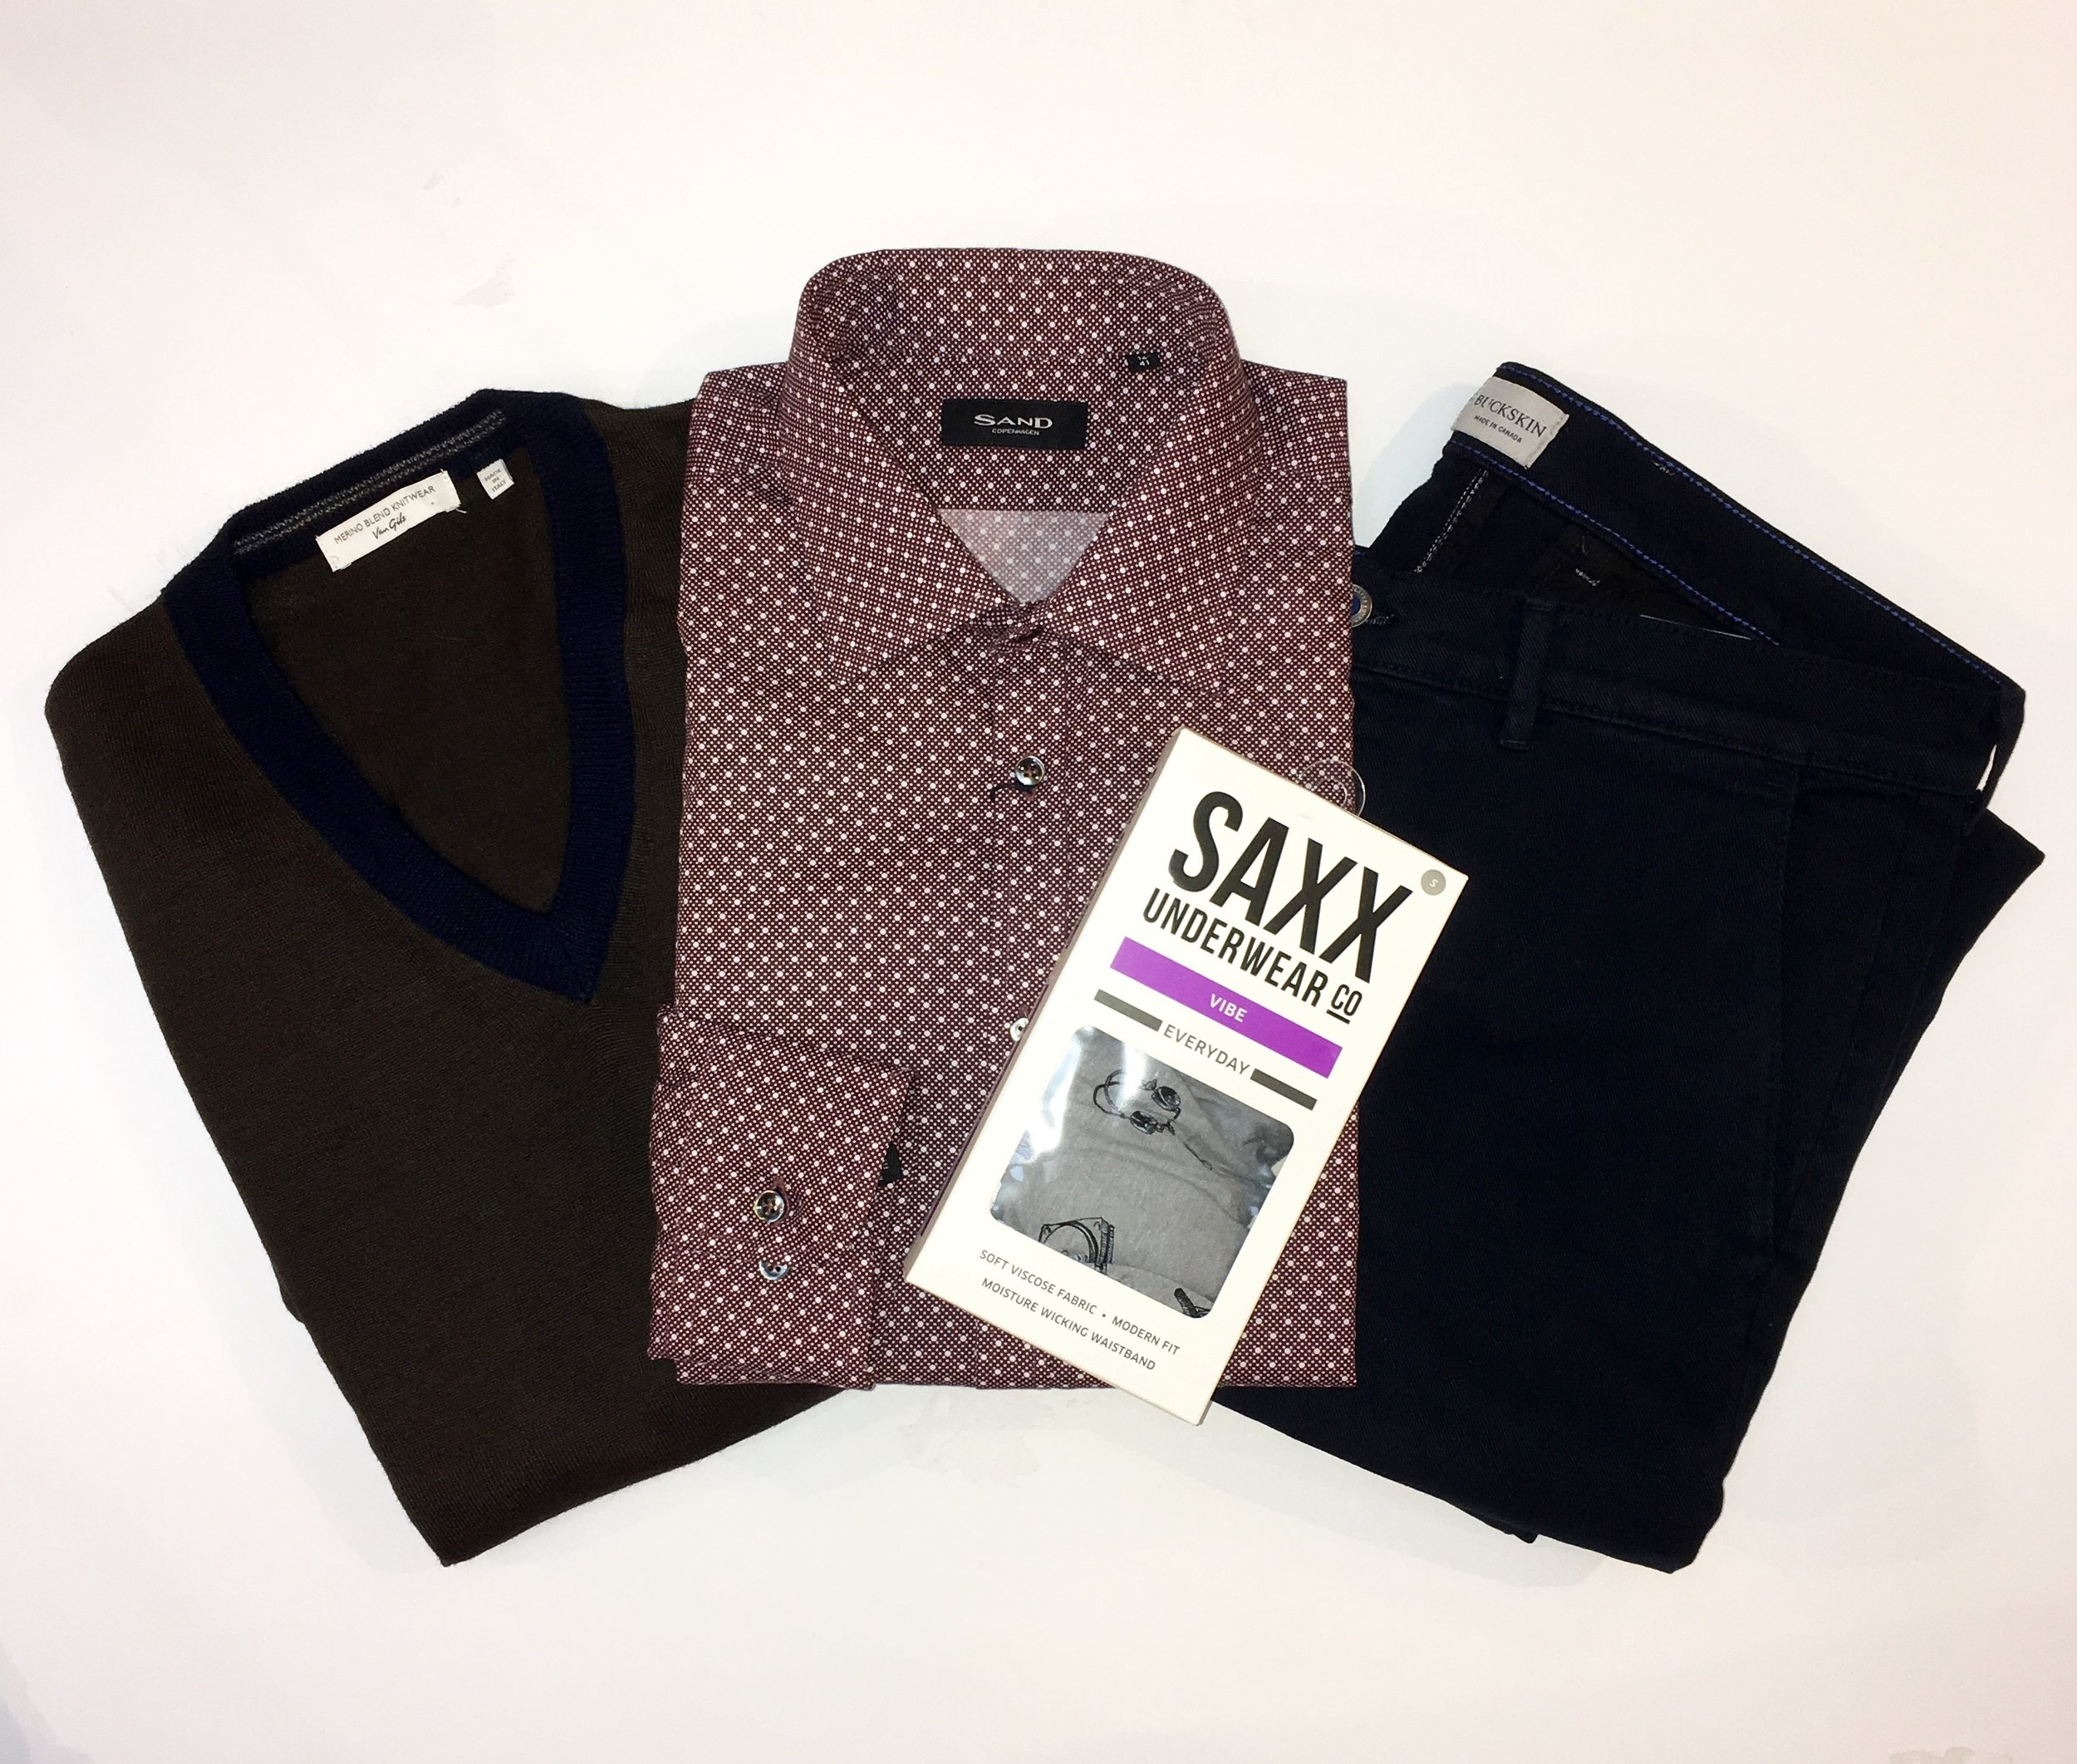 Business Man Starter Pack:  Van Gils Merino Wool Sweater $145 Sand Dress Shirt $225 Buckson Slacks $220 Saxx Underwear $32  - If he  still  hasn't tried these, this is your number one gift idea.